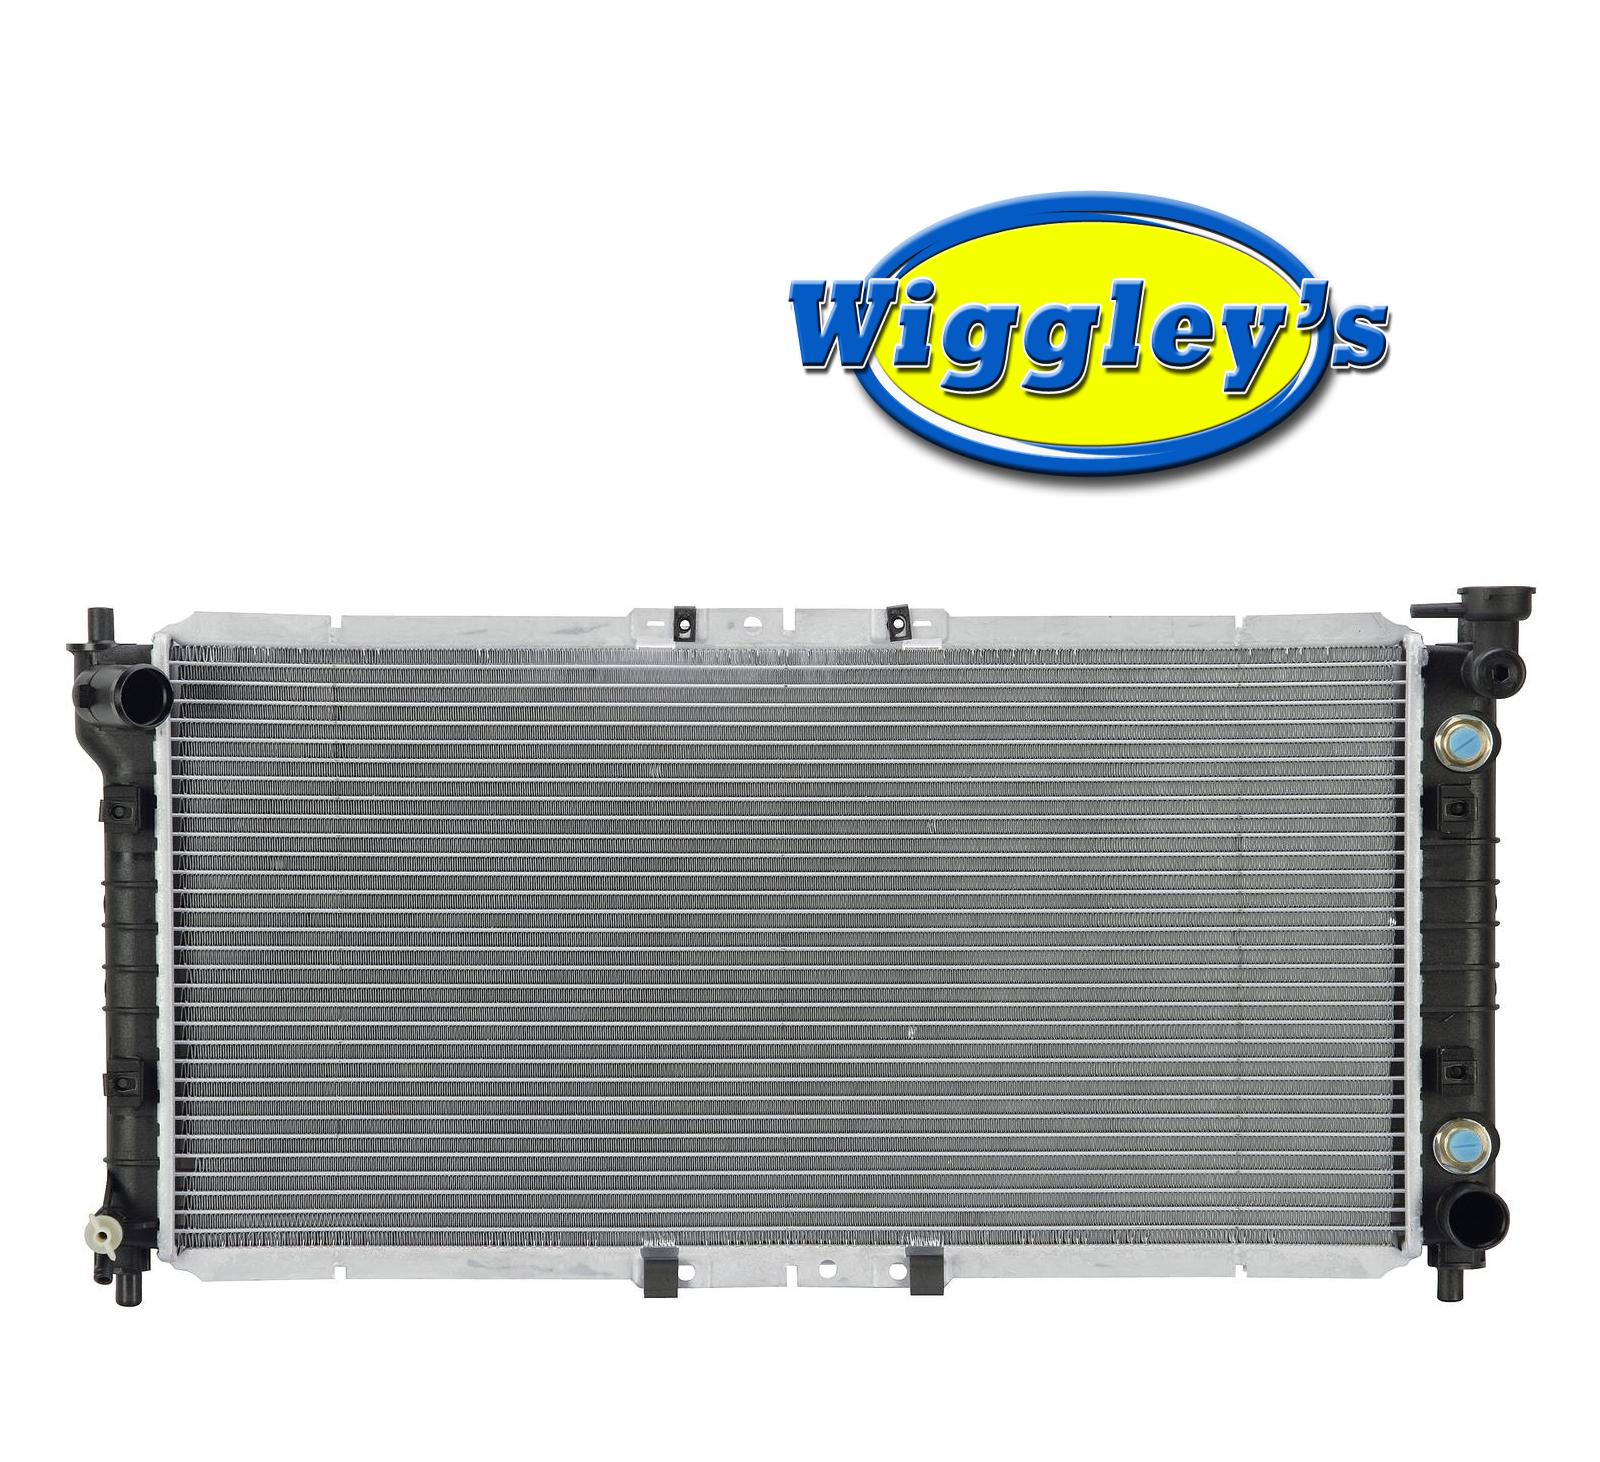 RADIATOR MA3010125 FOR 92 93 94 95 96 97 MAZDA MX-6 / 93 94 95 96 97 MAZDA 626